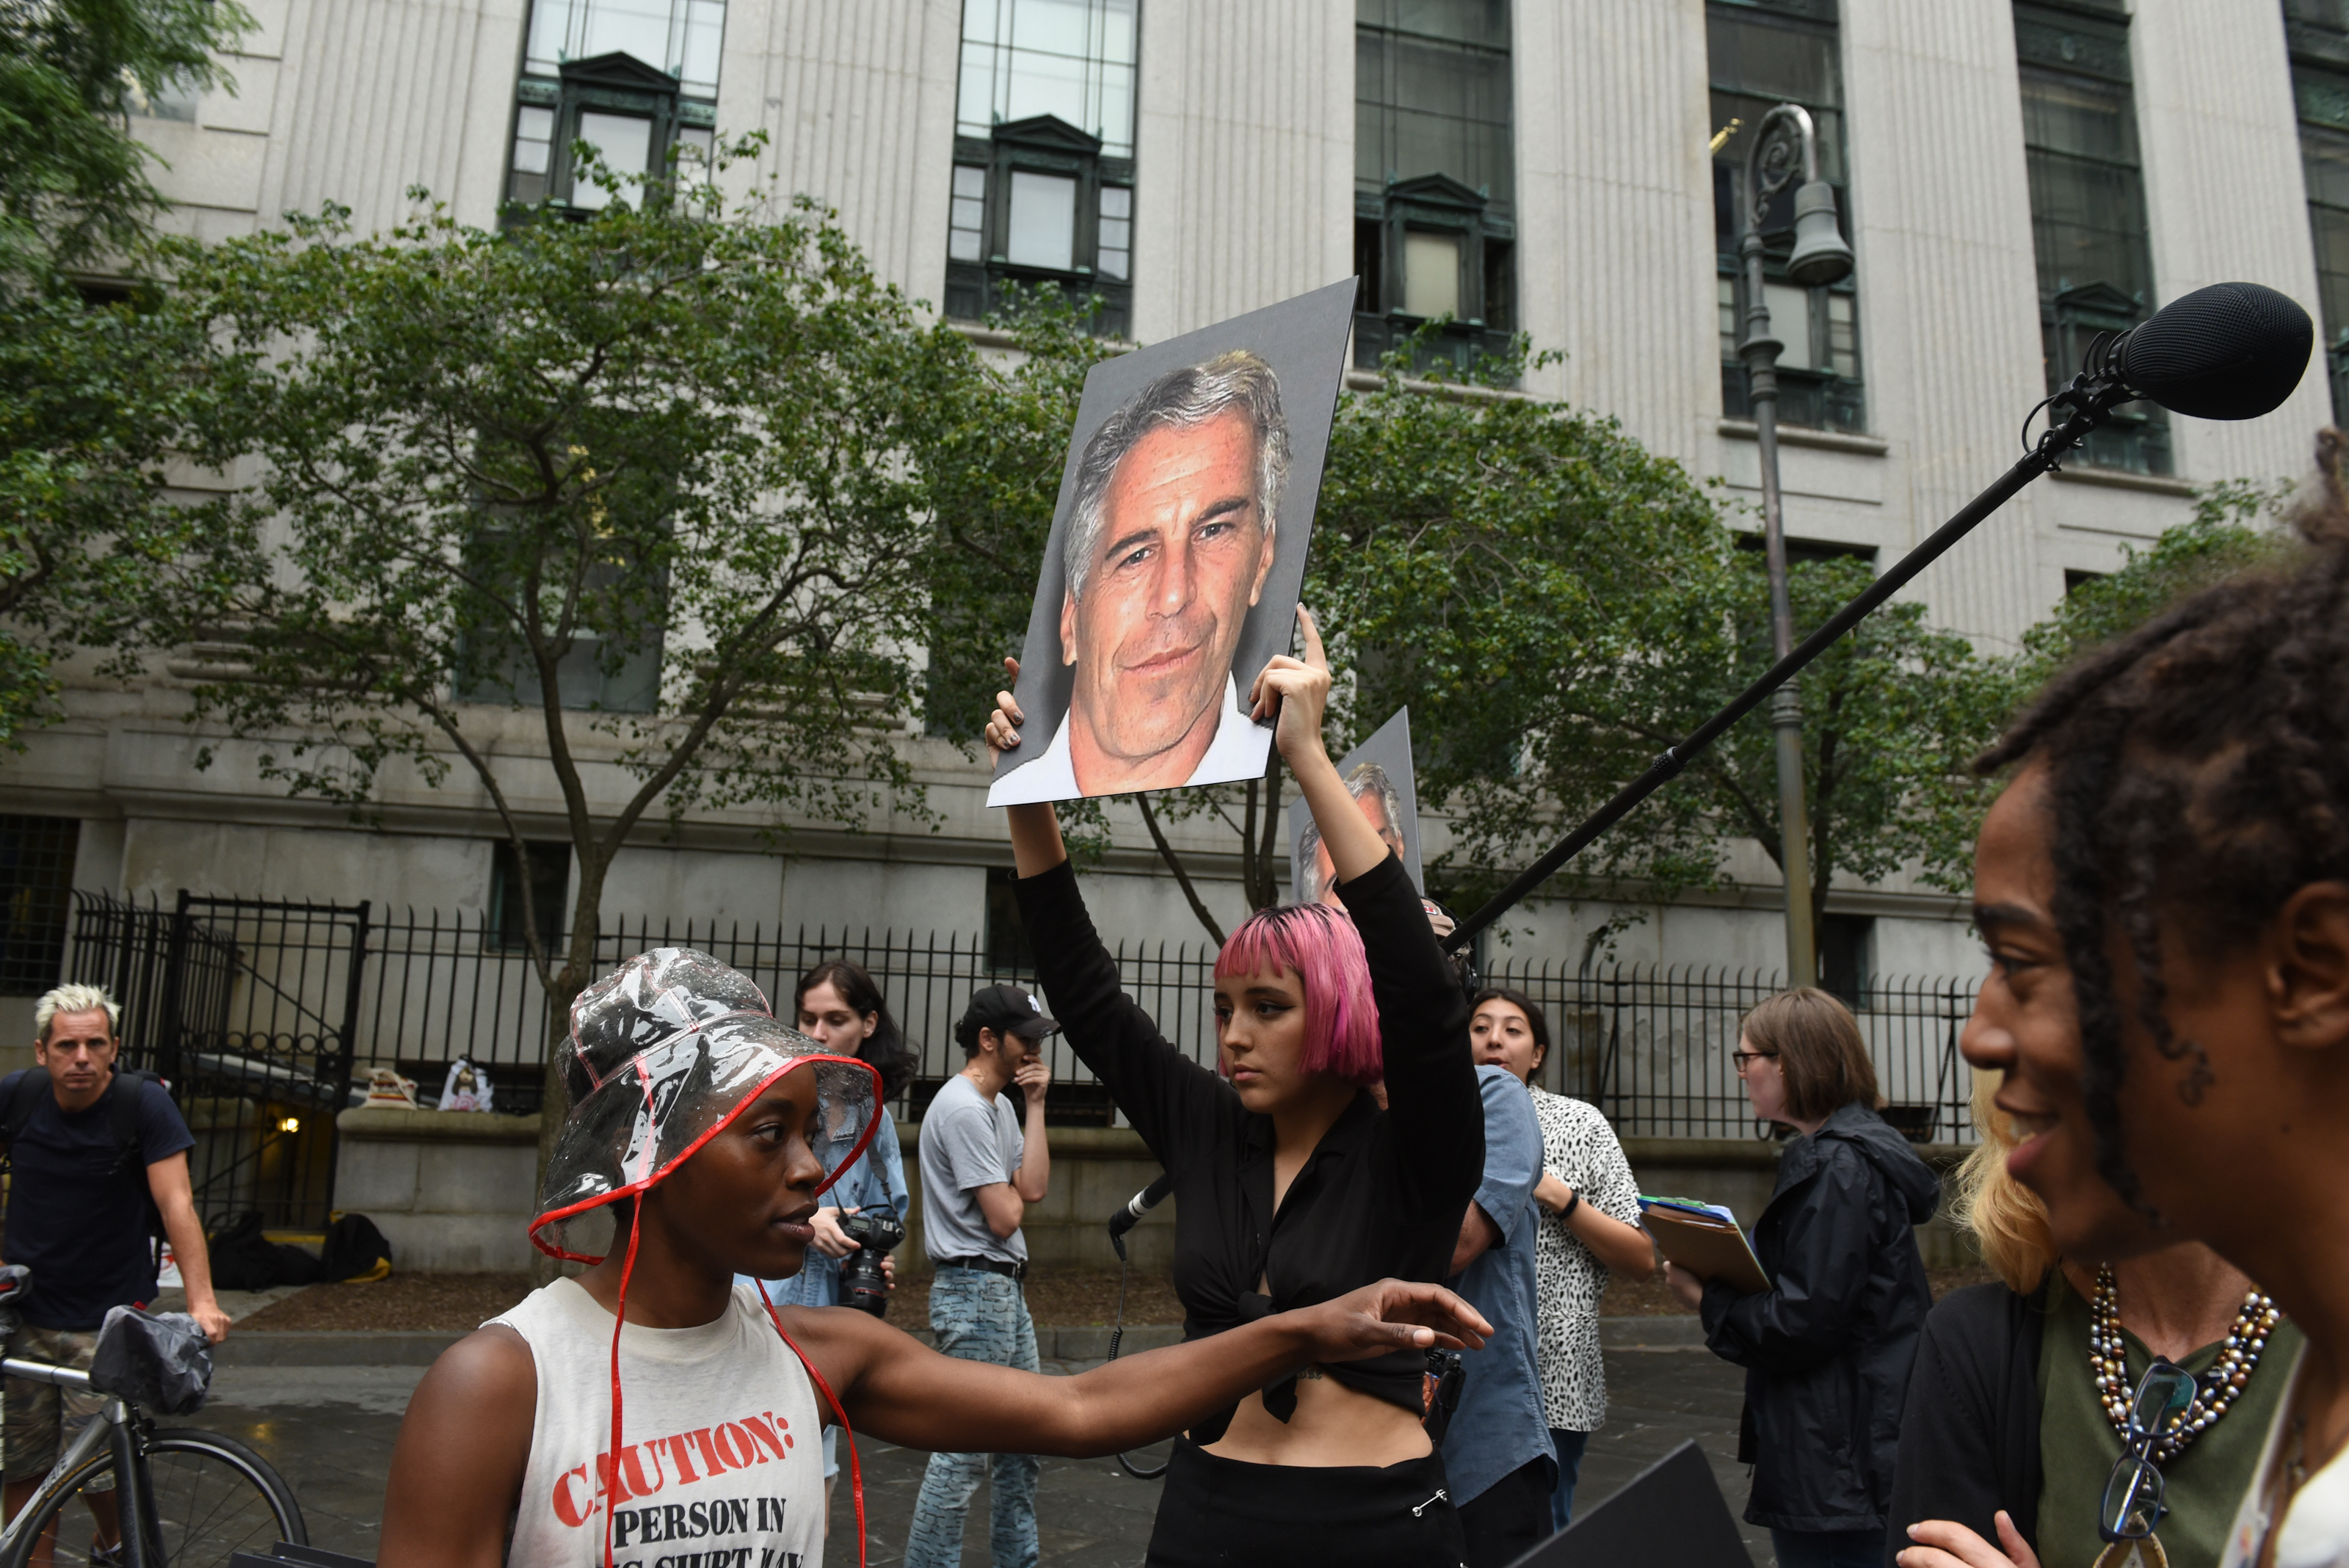 Protesters, including one holding a sign with a photograph of Jeffrey Epstein's face.